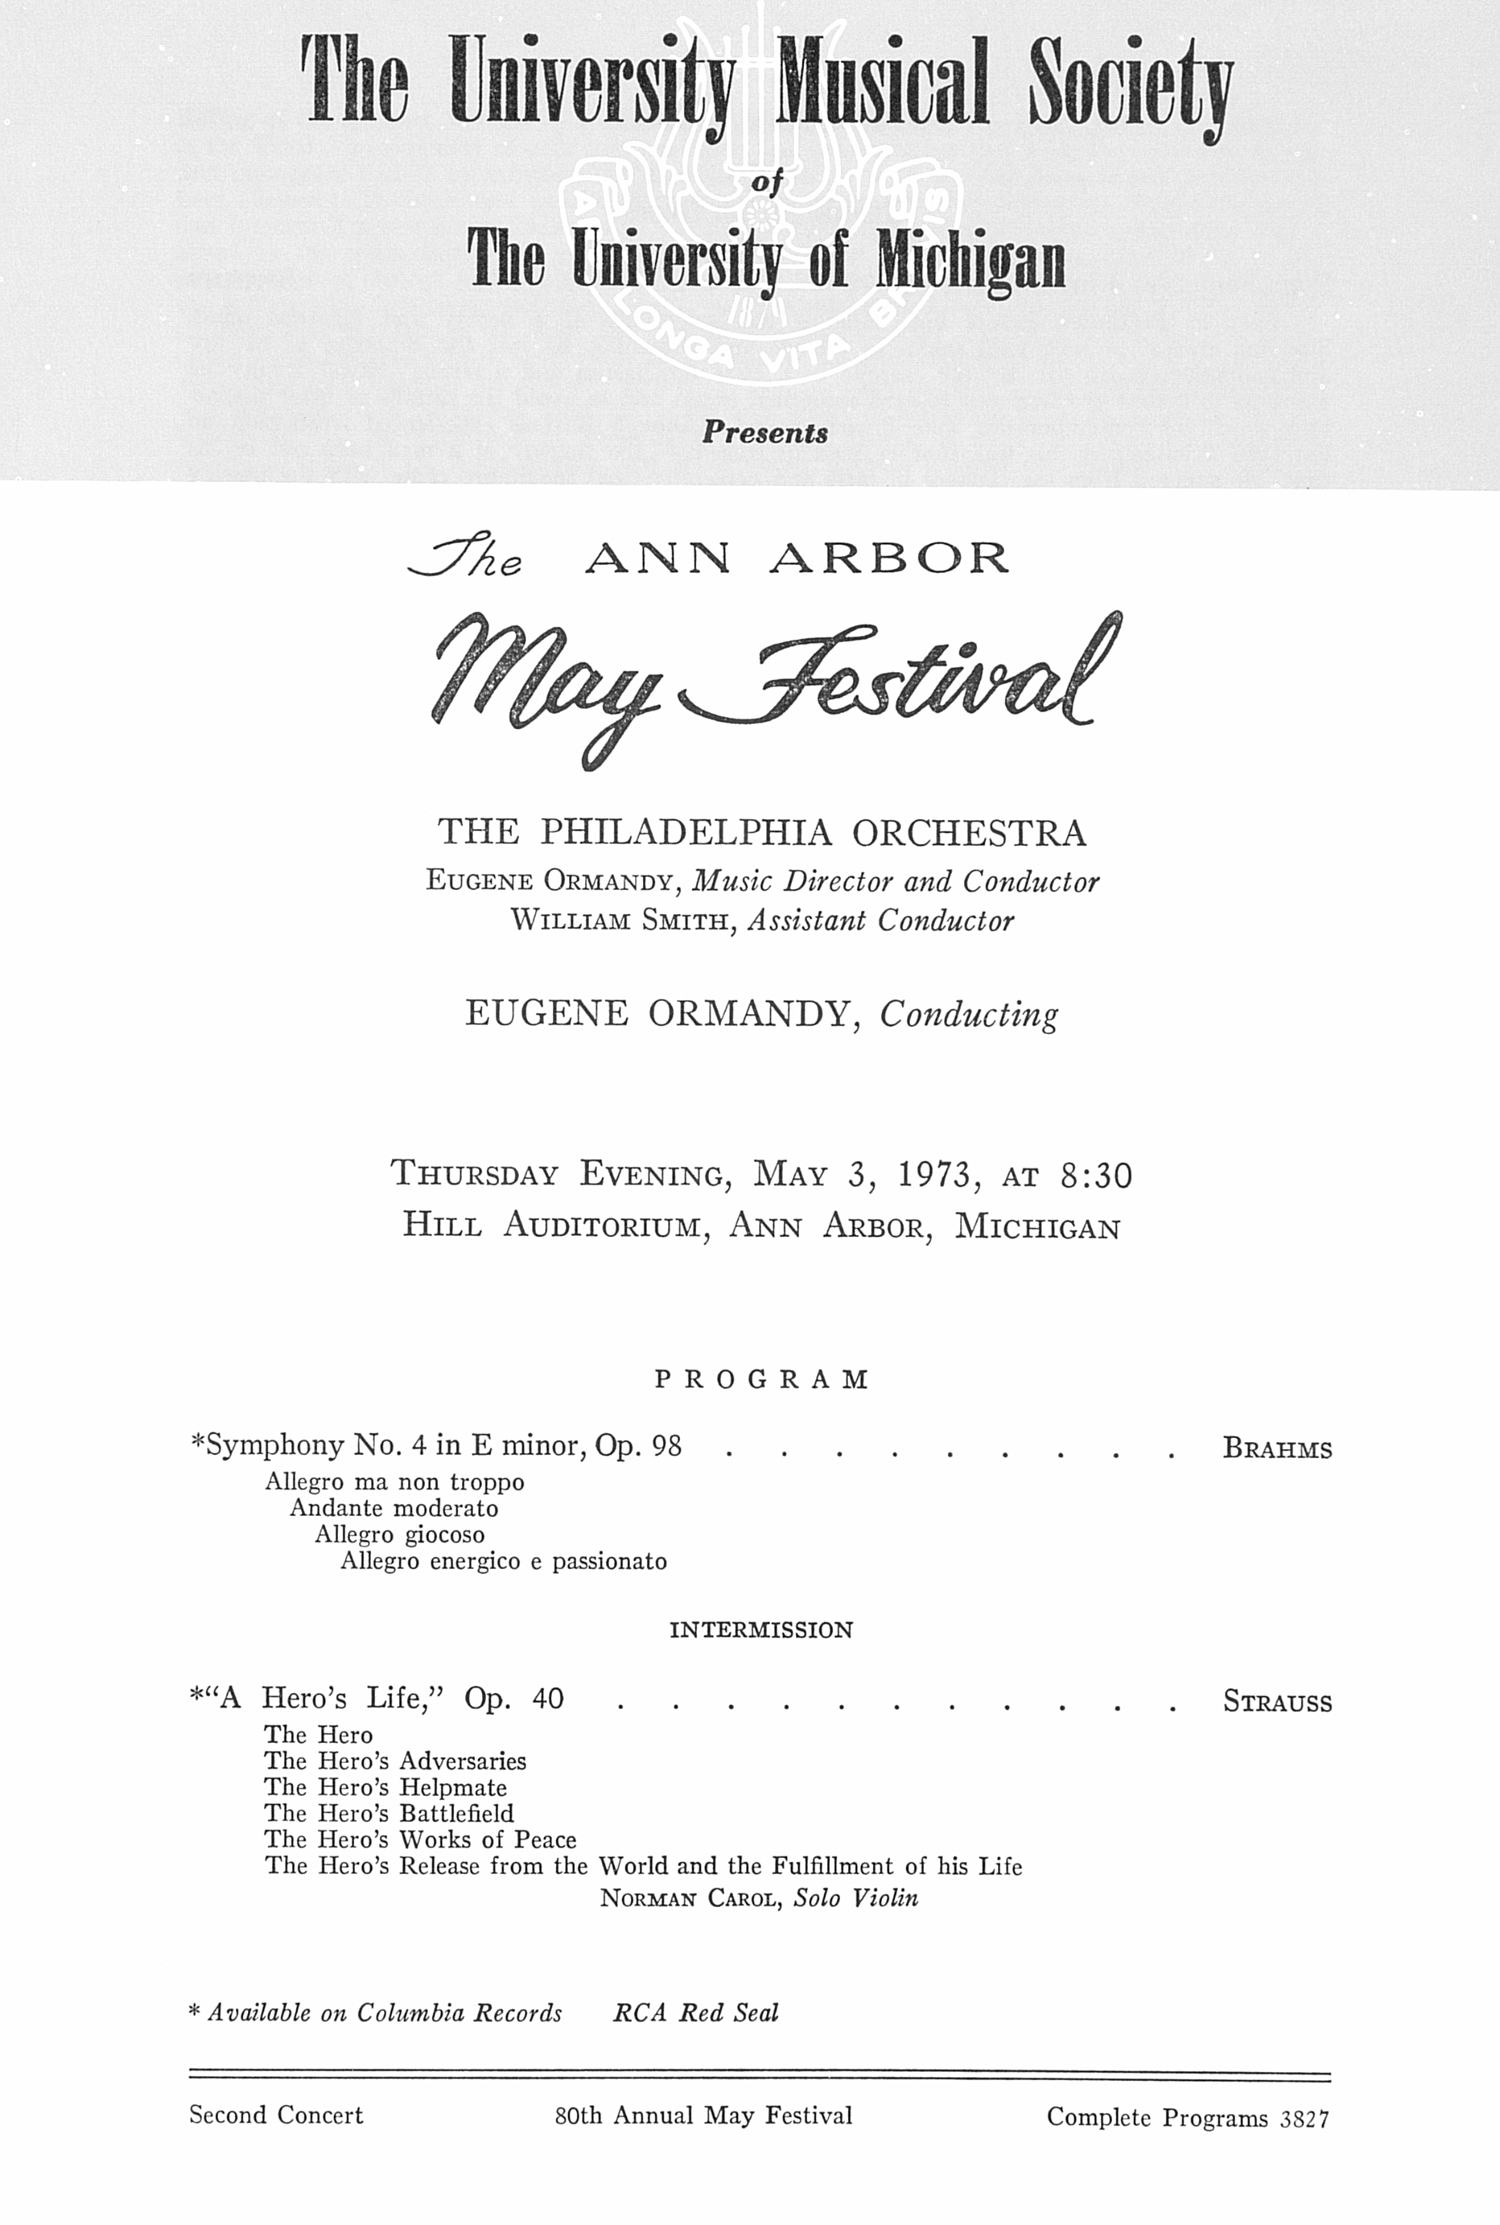 UMS Concert Program, May 3, 1973: The Ann Arbor May Festival -- The Philadelphia Orchestra image